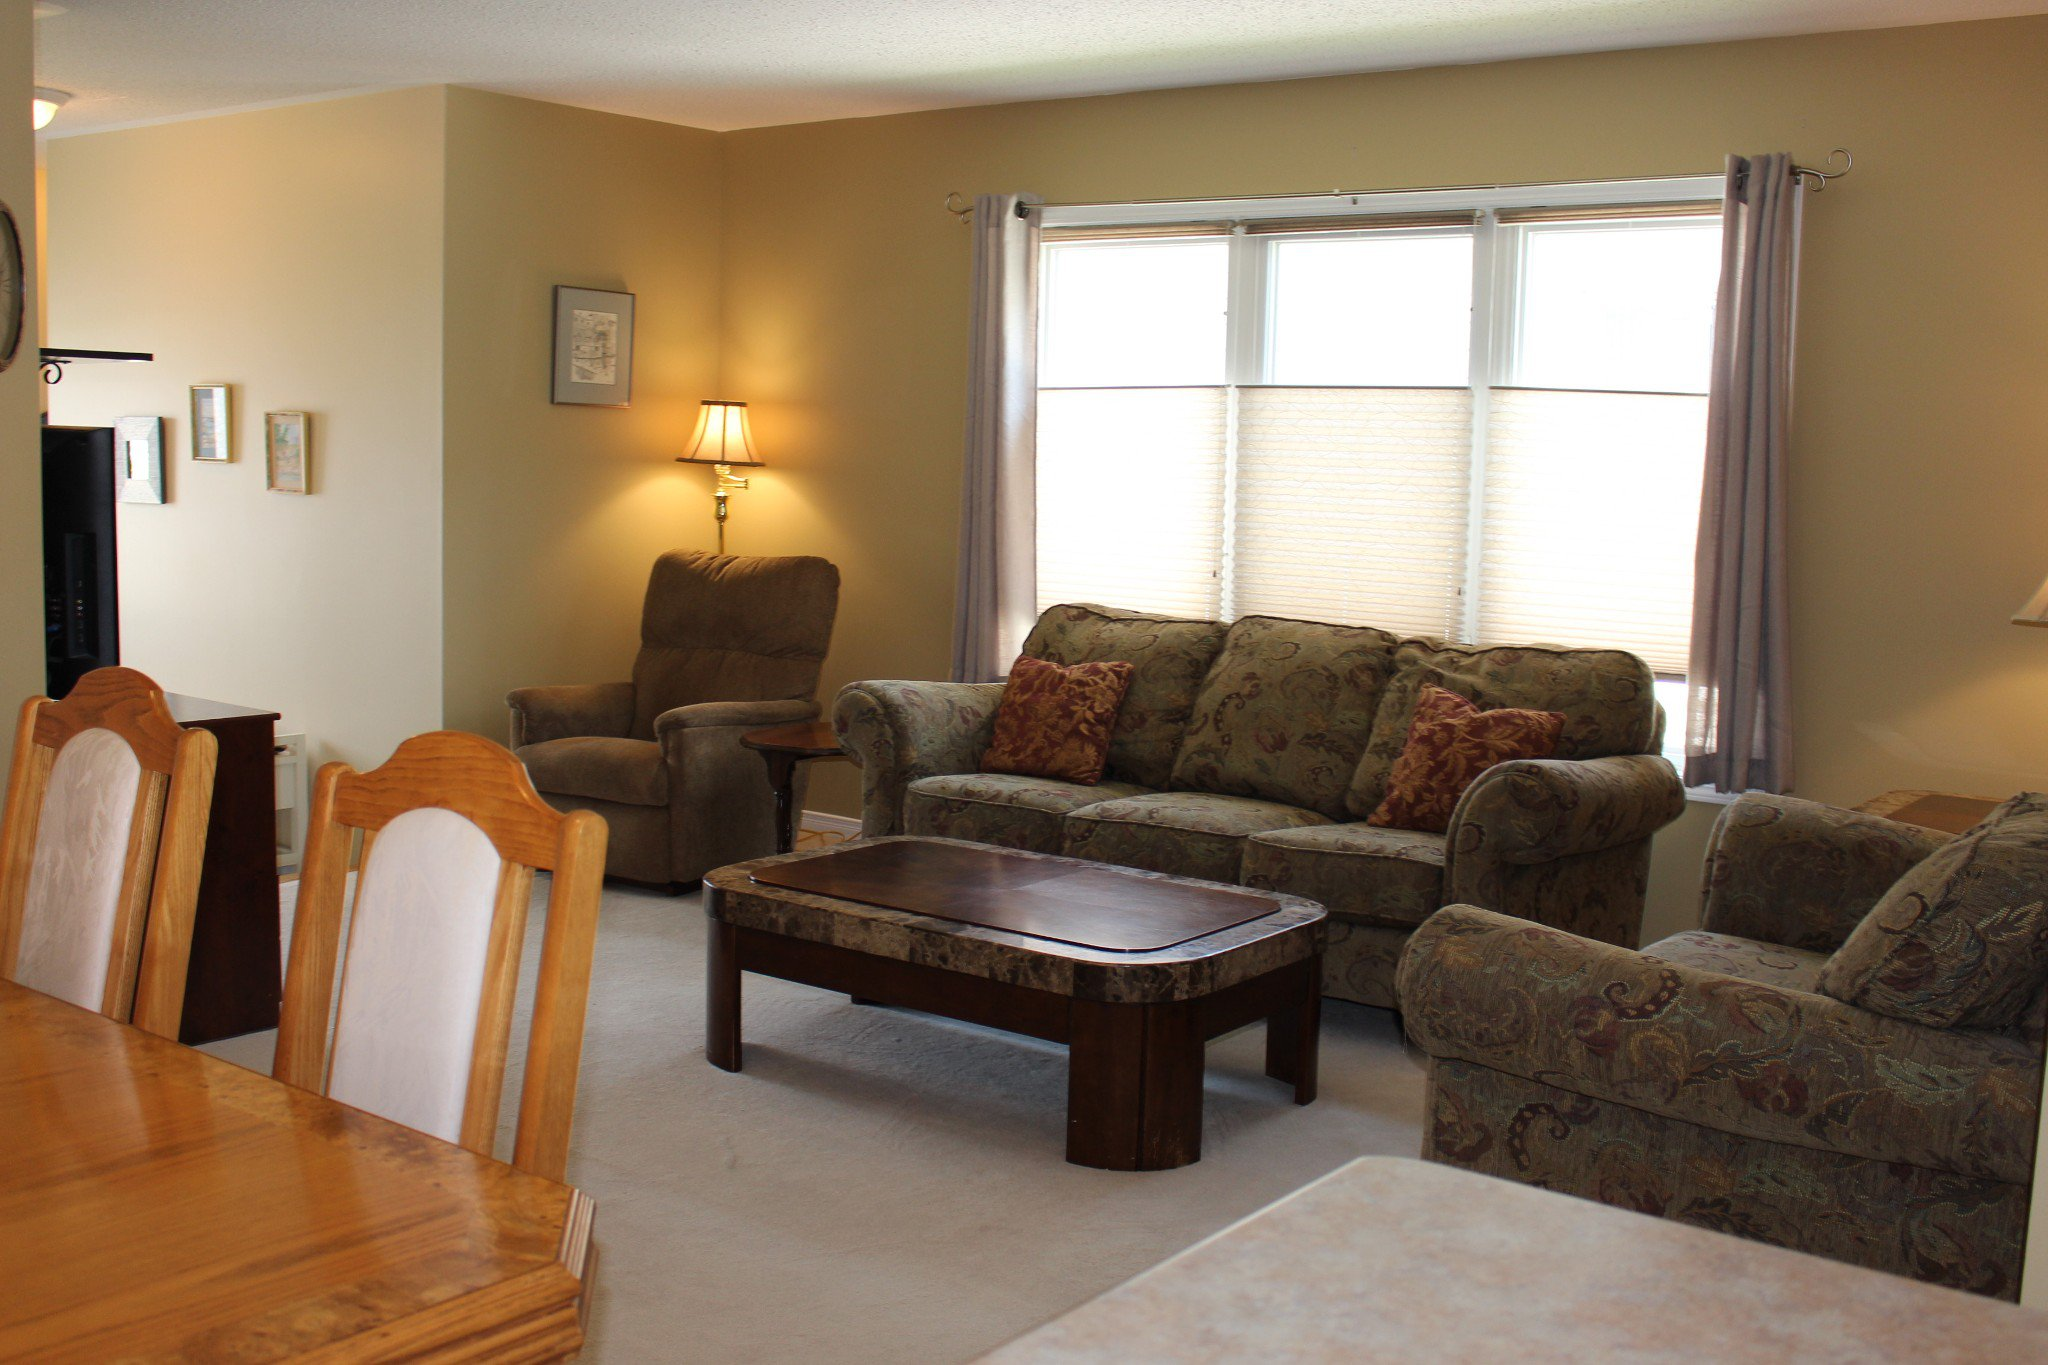 Photo 5: Photos: 831 Leslie Street in Cobourg: Residential Attached for sale : MLS®# 138391